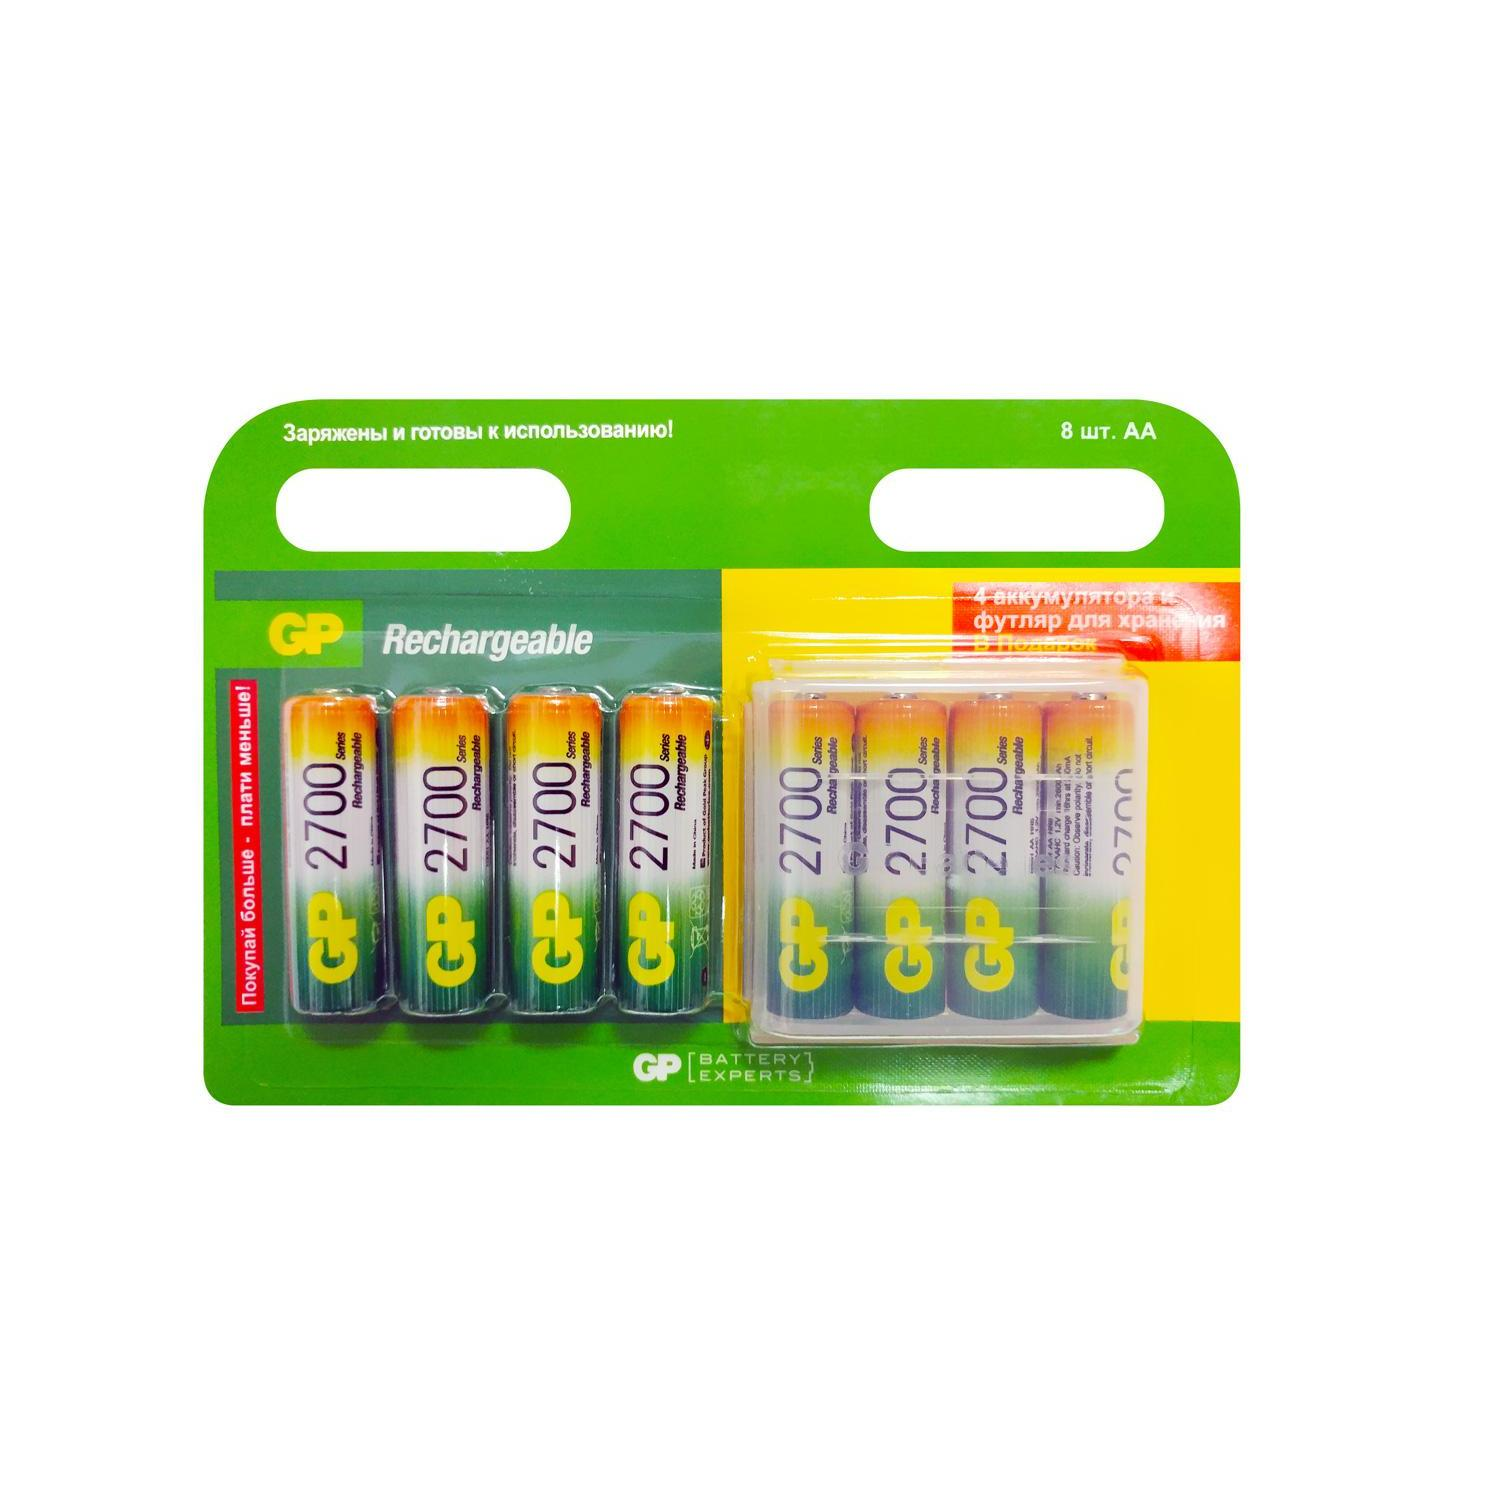 Battery GP AAHC AA: AA (LR6) Qty Per CTN. 8 PCs)